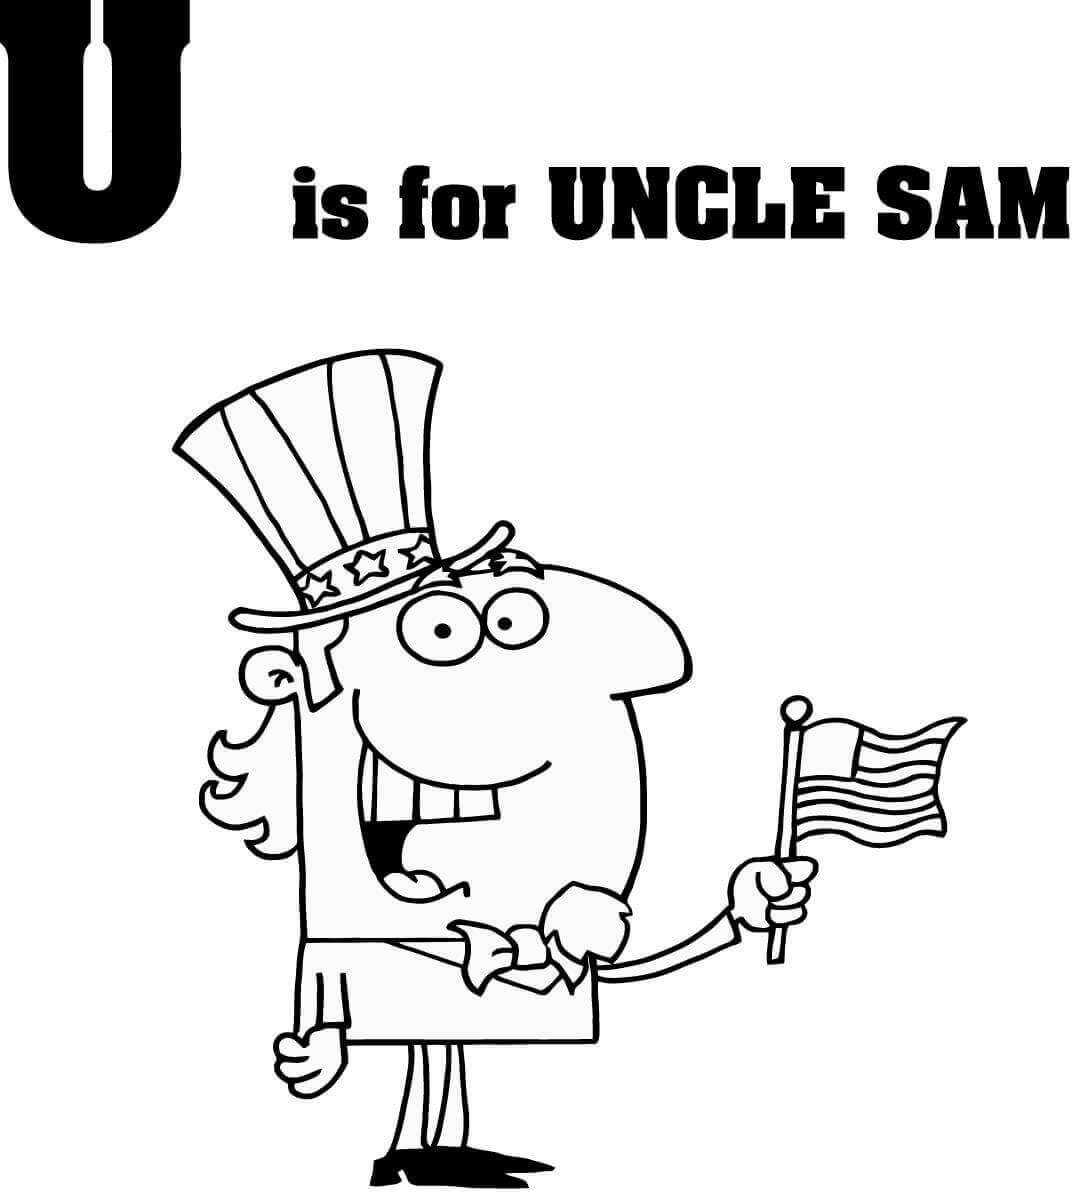 U is for Uncle Sam